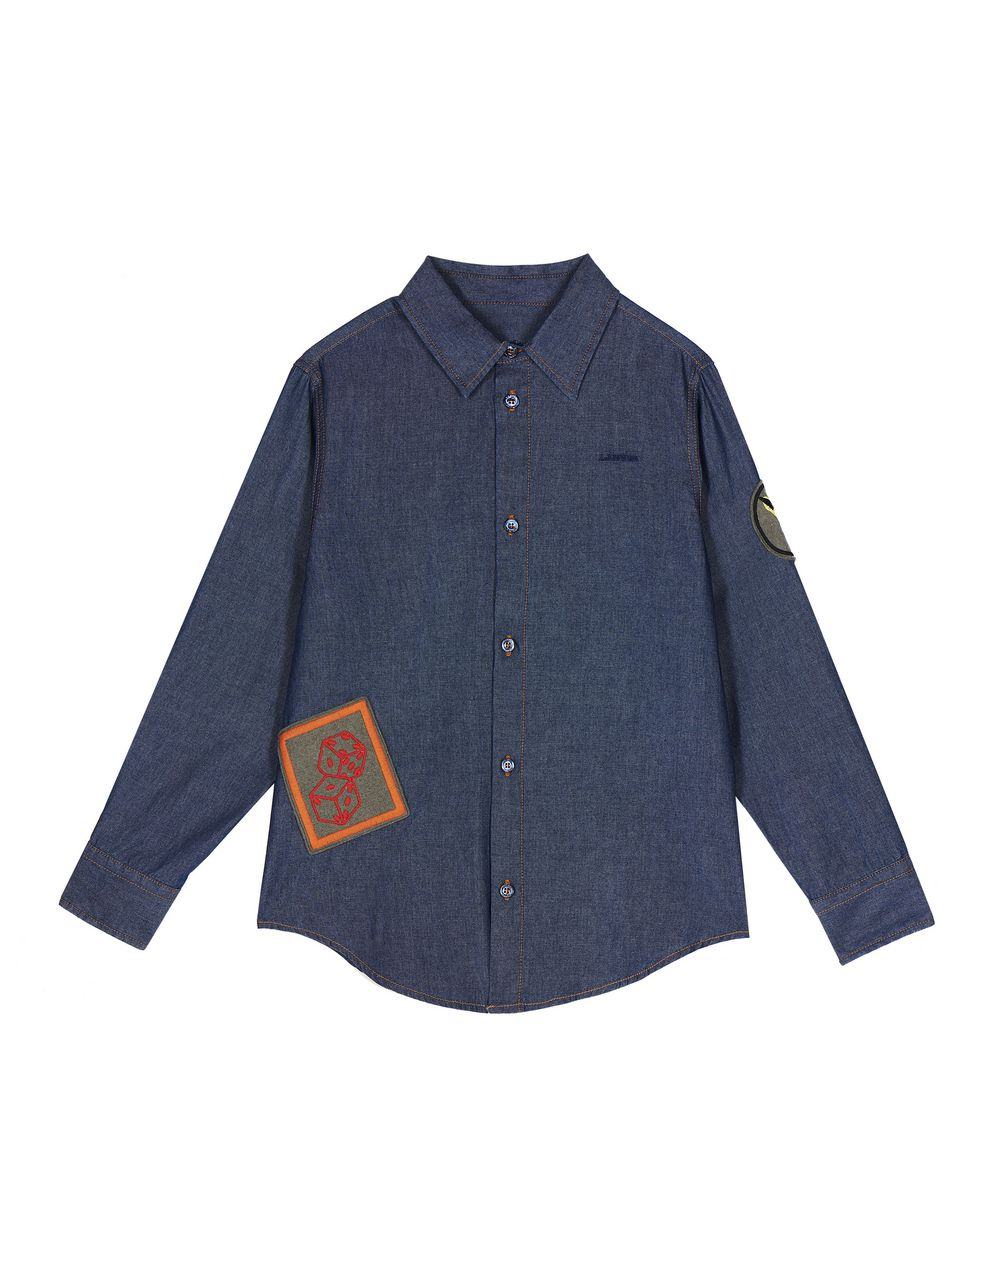 COTTON PATCH SHIRT  - Lanvin